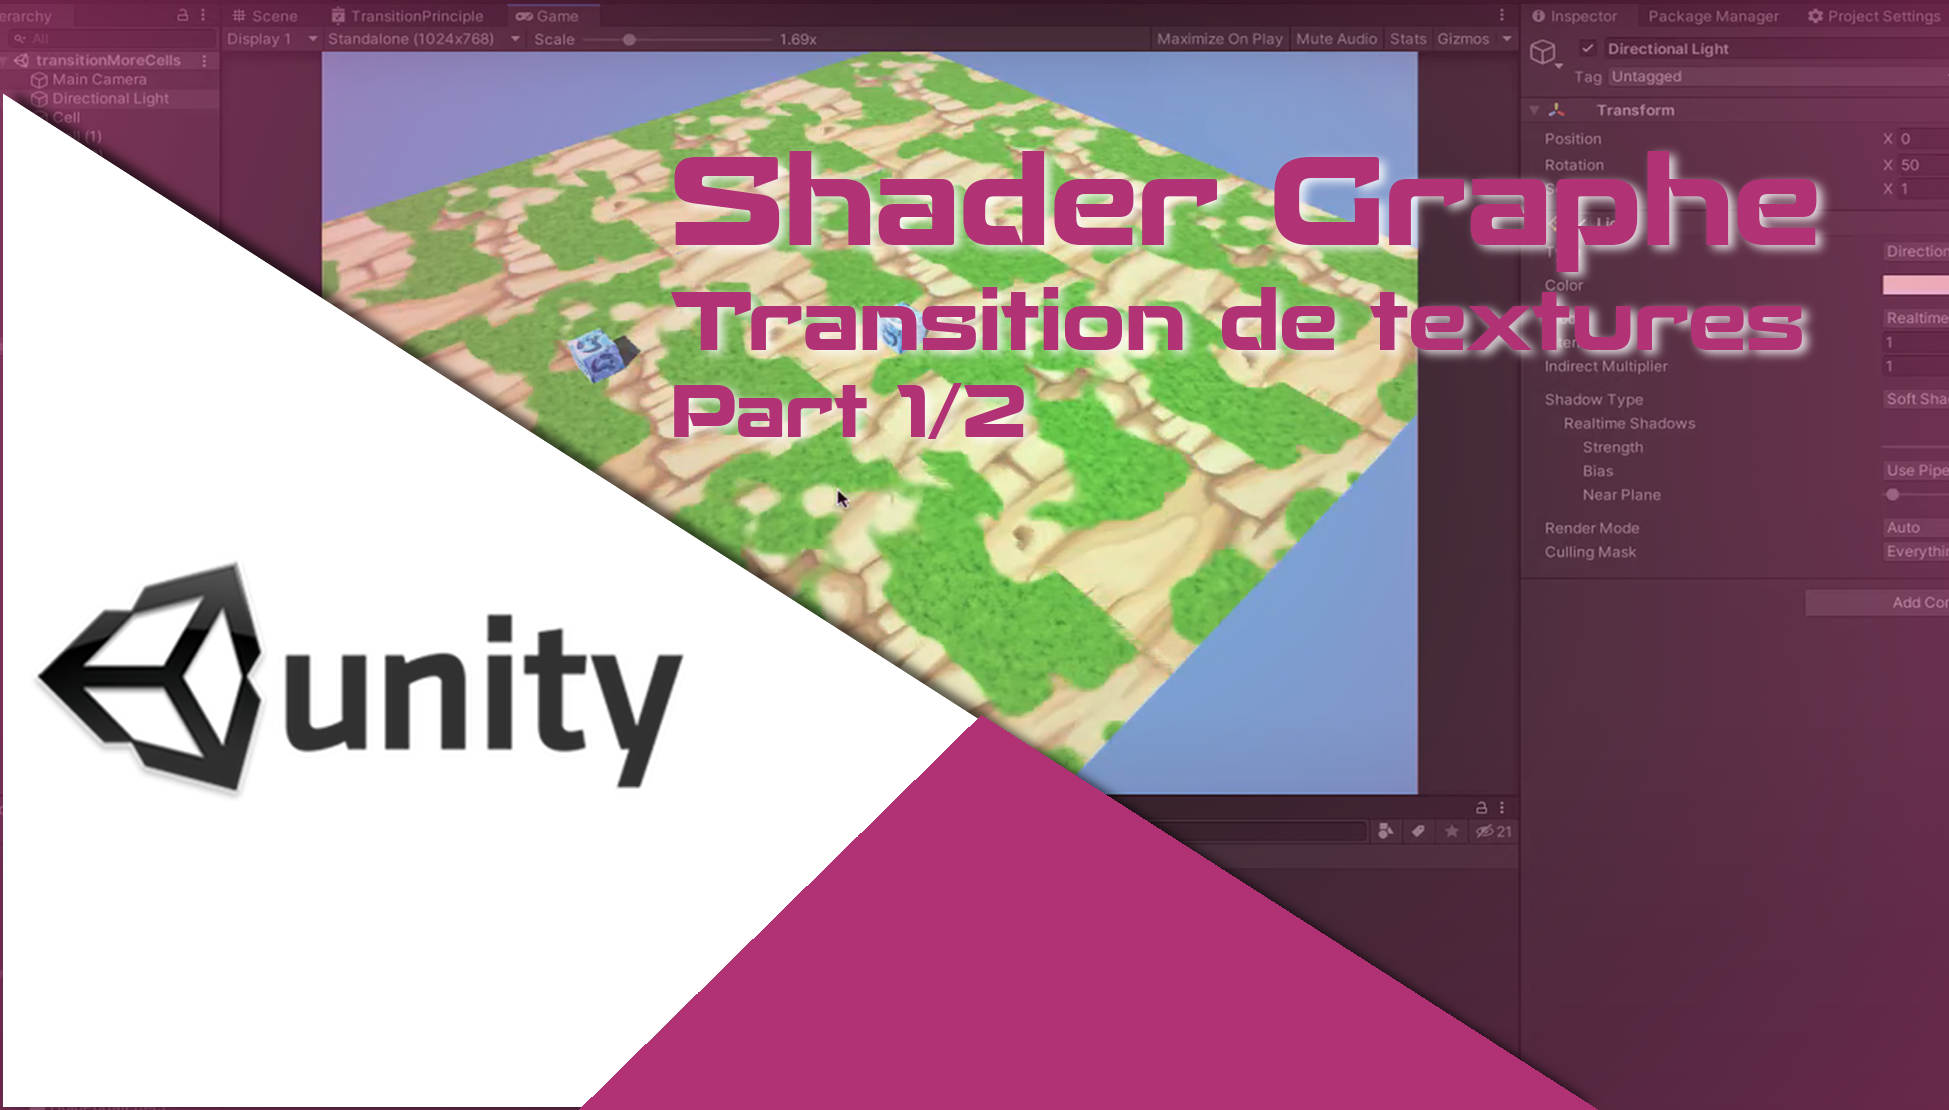 Transition de texture avec le Shader Graphe de Unity - part1